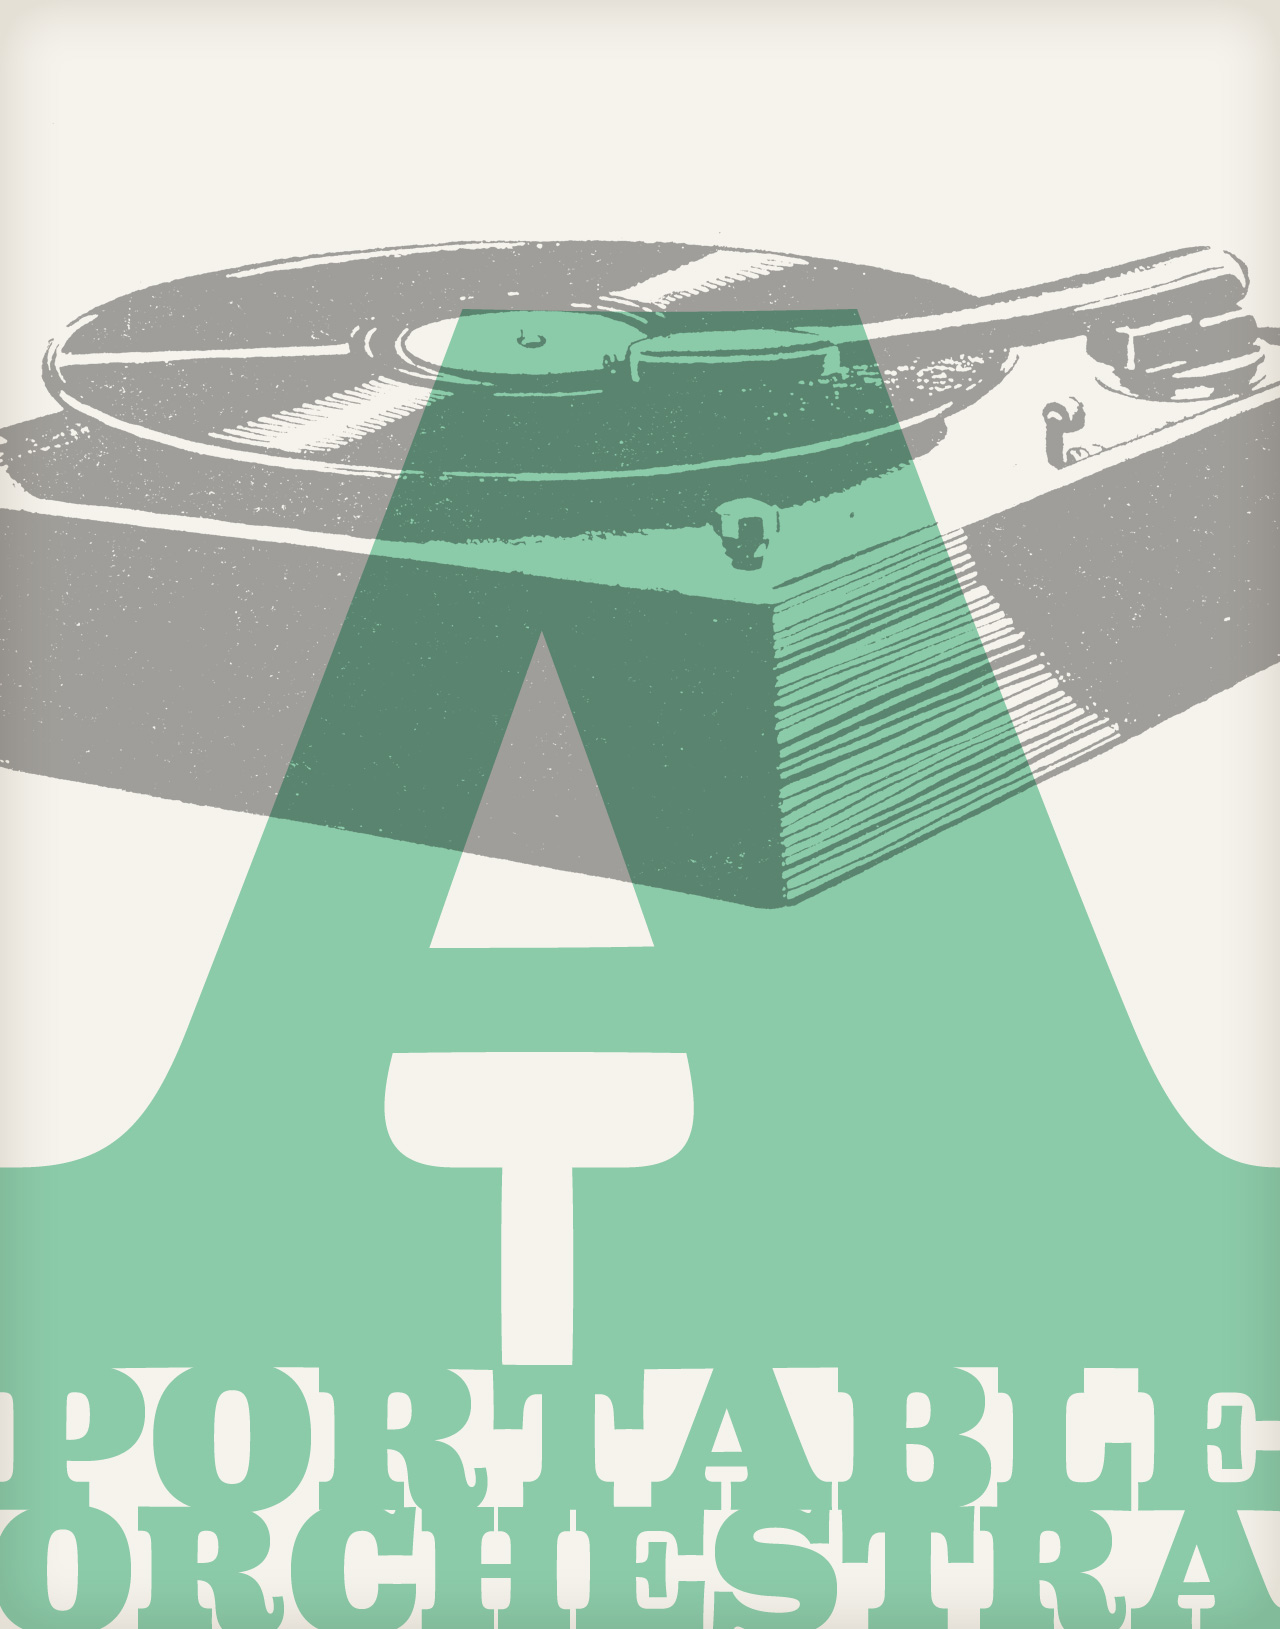 poster_a_portable_orchestra_02.jpg